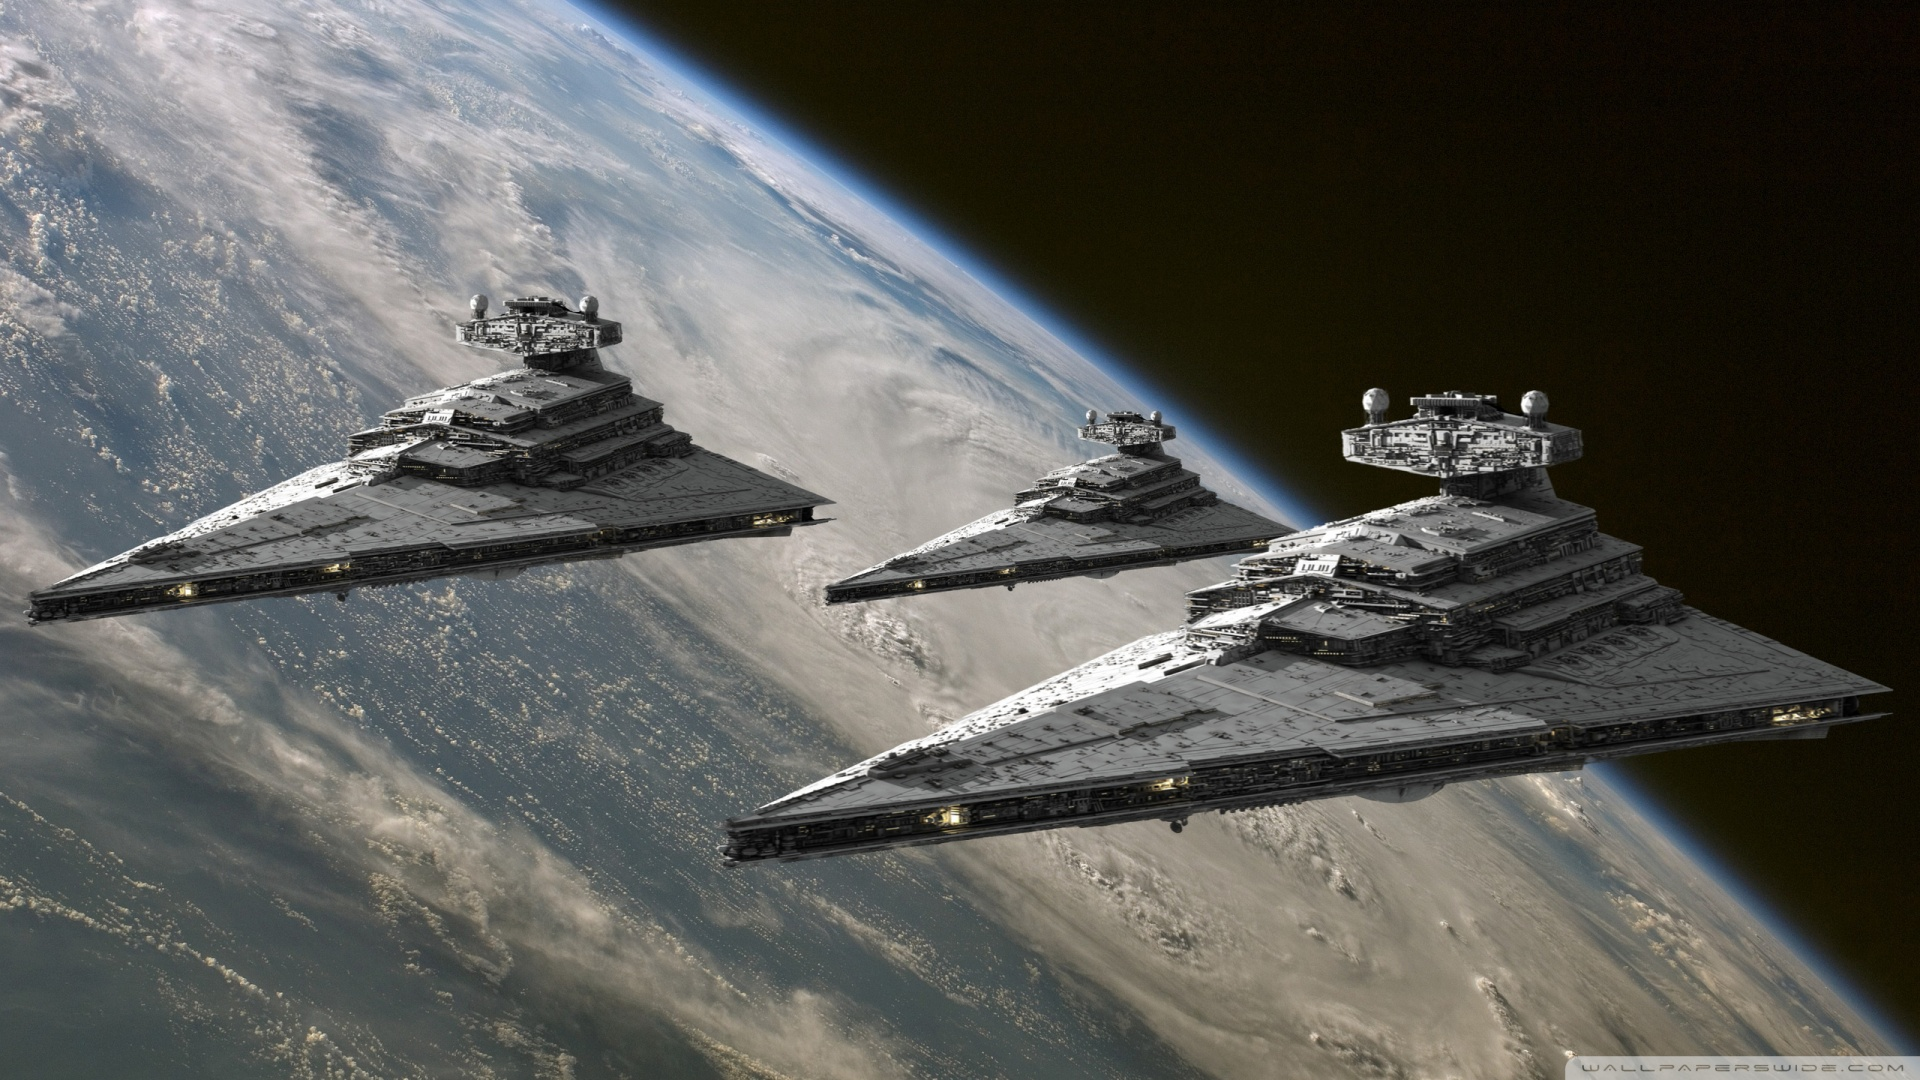 star wars imperial space ships 1920x1080